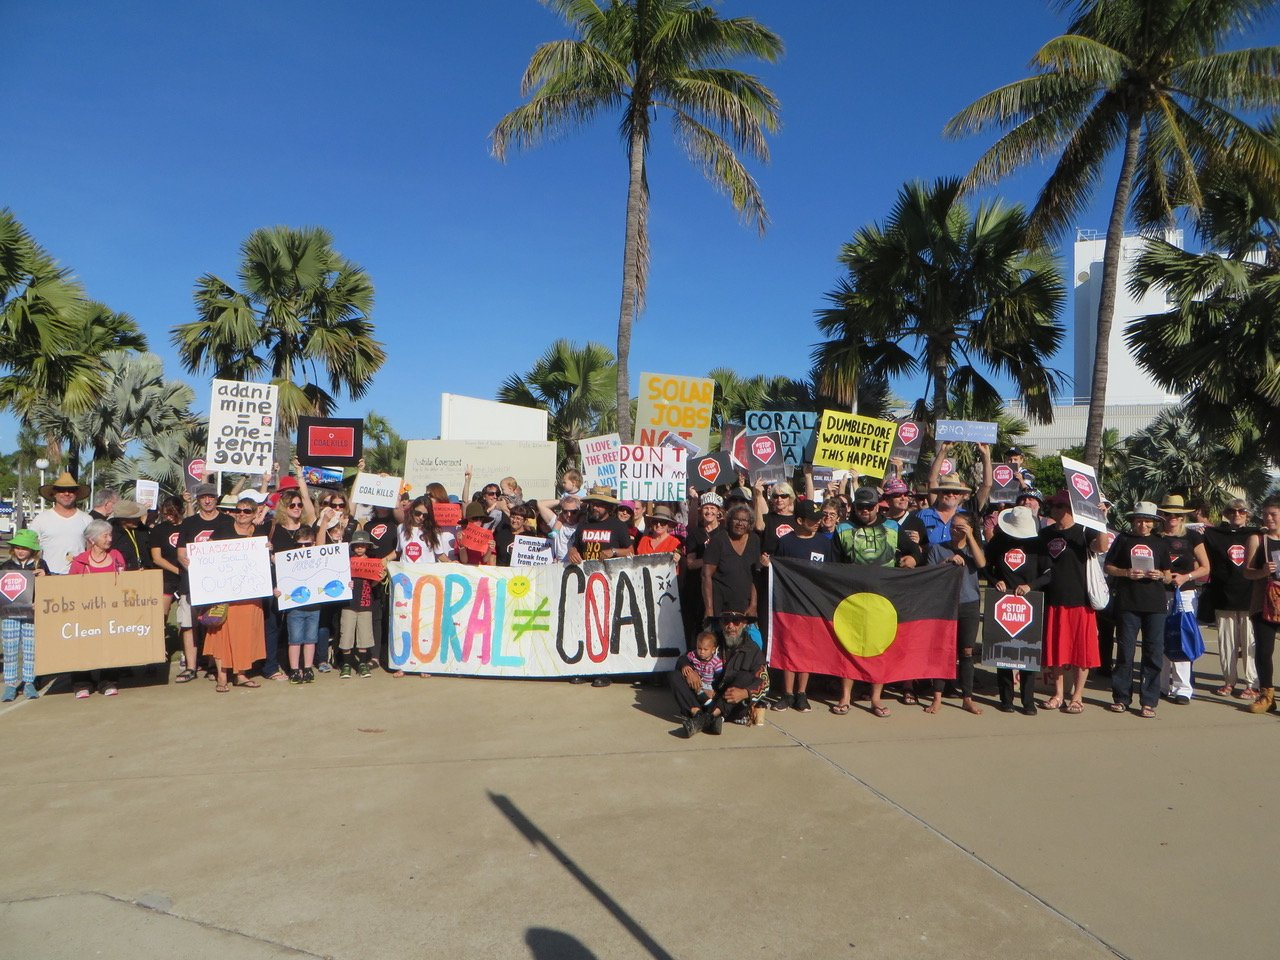 Townsville: 300 protestors and Juru Traditional owner Aunty Carol Prior say NO to Adani outside State ALP conference #ALPQconf #StopAdani https://t.co/0Sb2VVjy9p